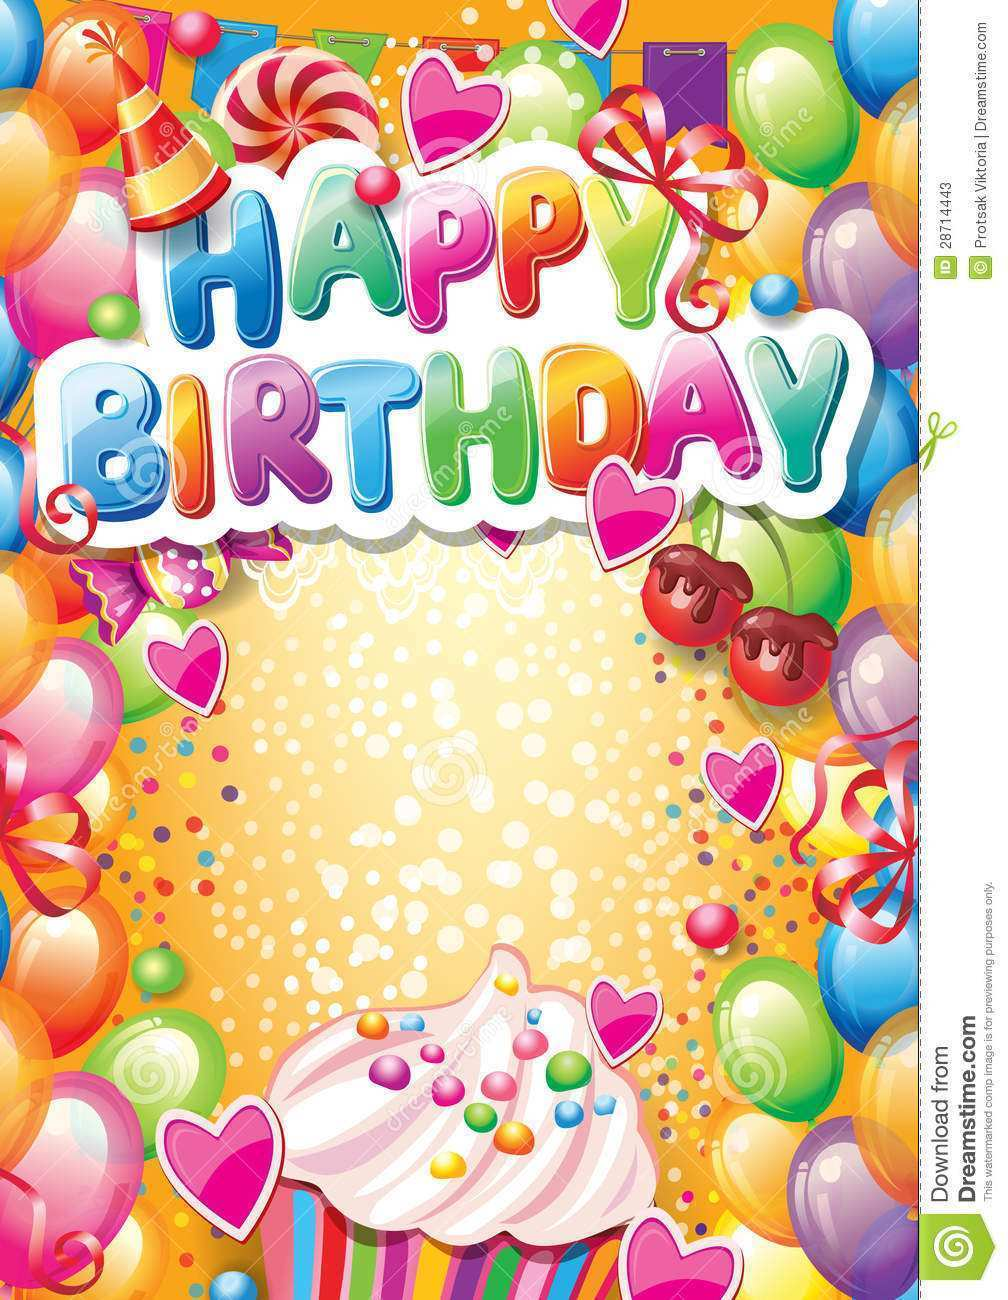 37 Online Happy Birthday Card Template Free Download Psd File By Happy Birthday Card Template Free Download Cards Design Templates